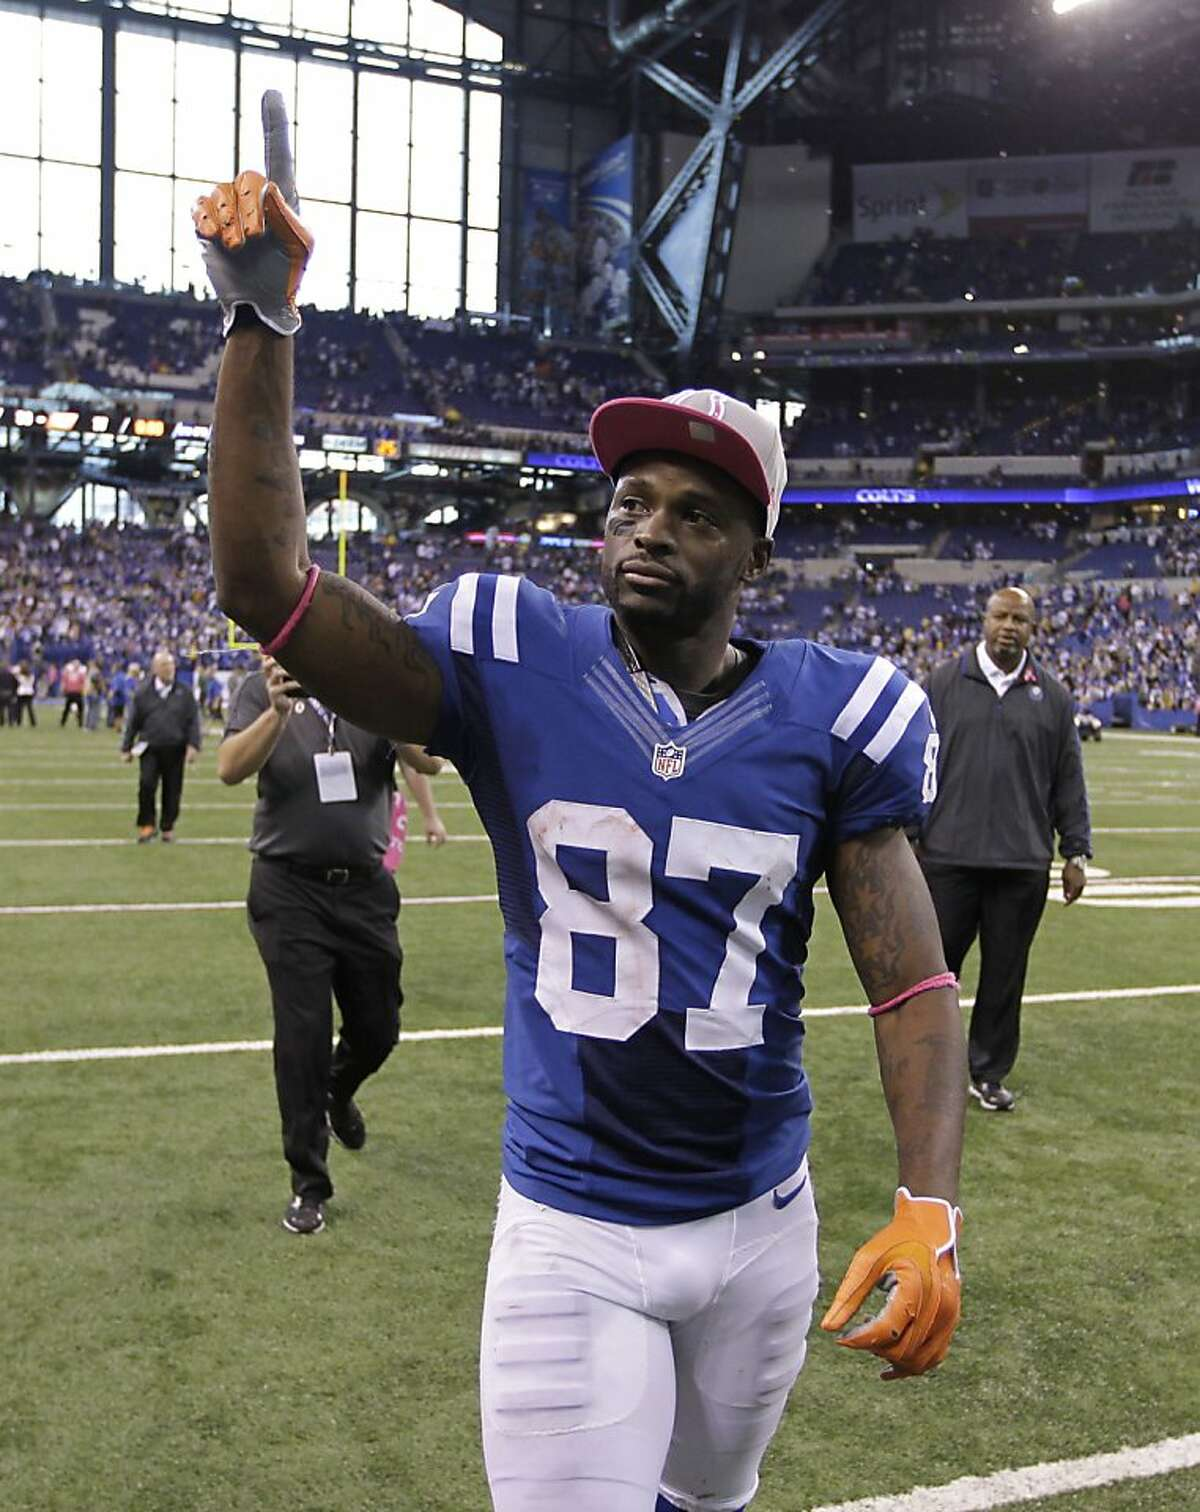 Indianapolis Colts wide receiver Reggie Wayne reacts to fans following an NFL football game against the Green Bay Packers in Indianapolis, Sunday, Oct. 7, 2012. (AP Photo/Michael Conroy)